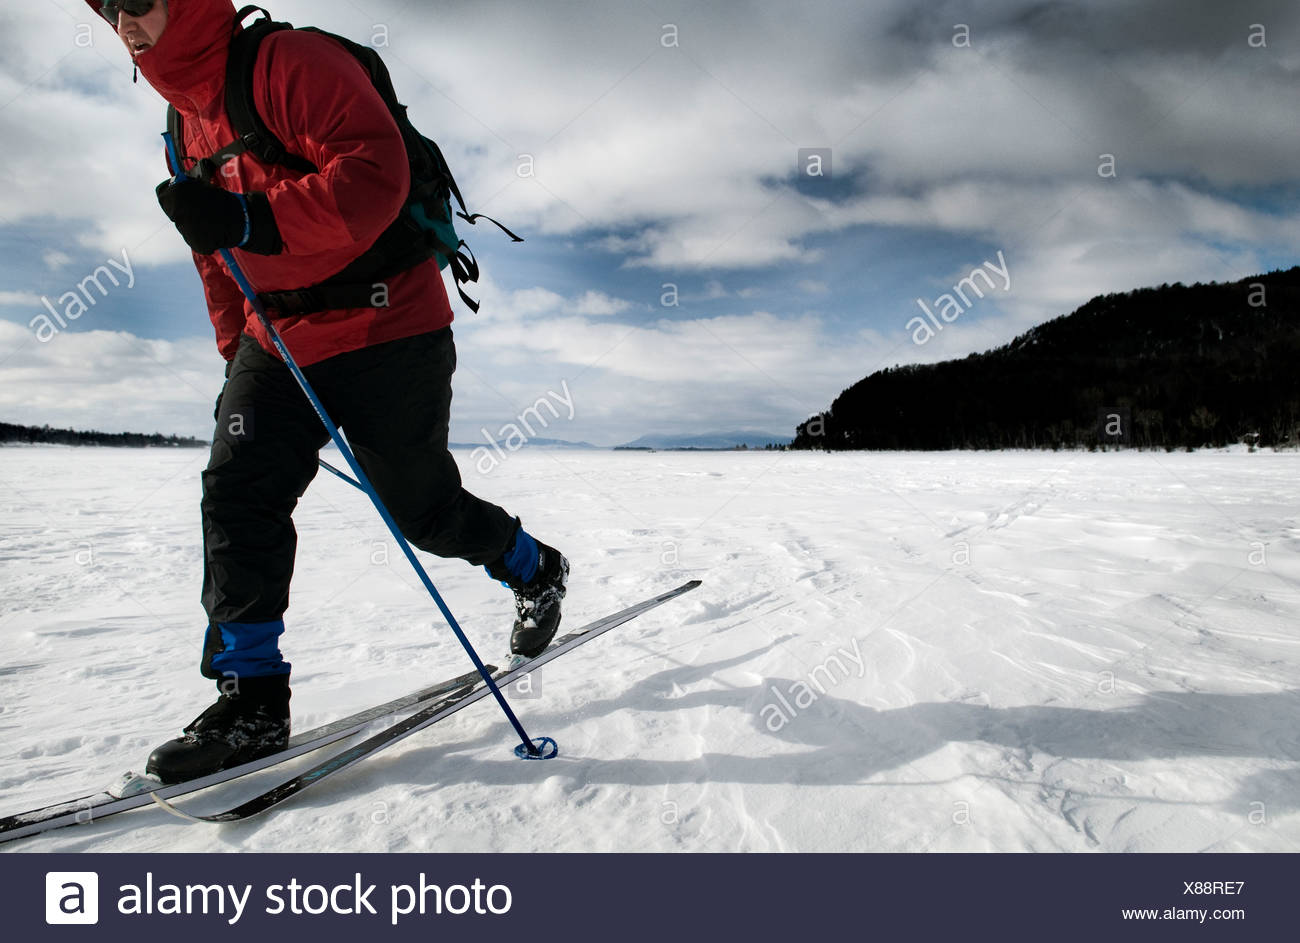 Skiing on the frozen tundra of Moosehead Lake, Maine. - Stock Image